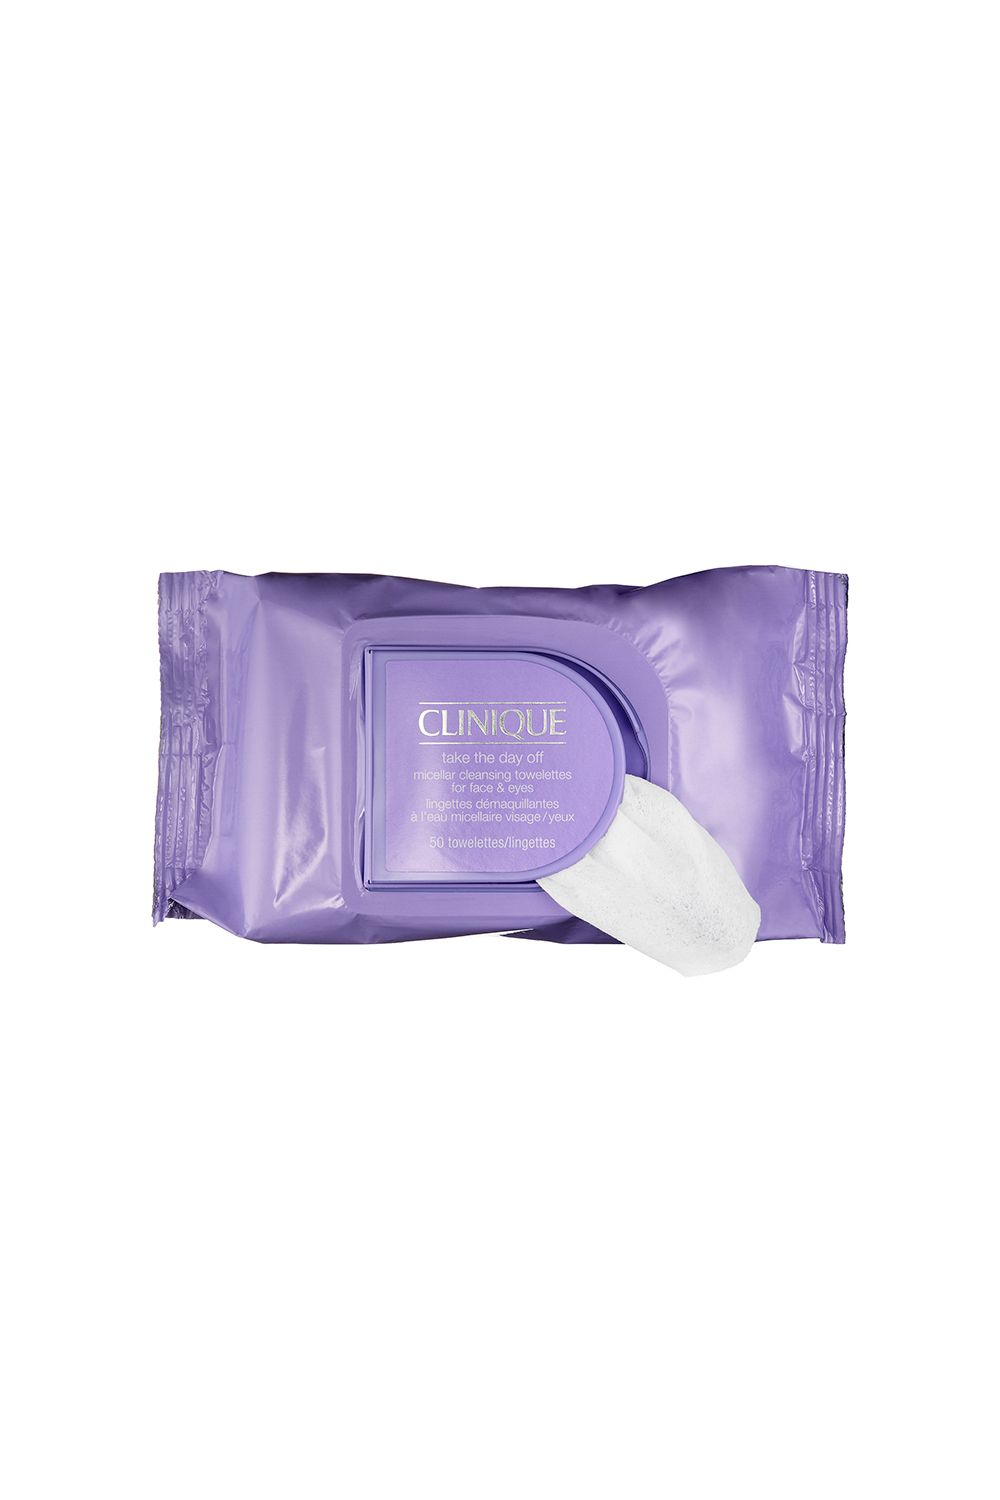 """<p>You know you gotta. No one's woken up regretting having taken her makeup off the night before, but if you can't stay upright long enough for the sink, these gentle (but strong enough for your mascara) wipes are a fine substitute.</p><p><br><br>Clinique Take the Day Off Micellar Cleansing Towelettes, $14, <a href=""""http://rstyle.me/n/btj5e2bqb8f"""" target=""""_blank"""">sephora.com</a>.</p>"""